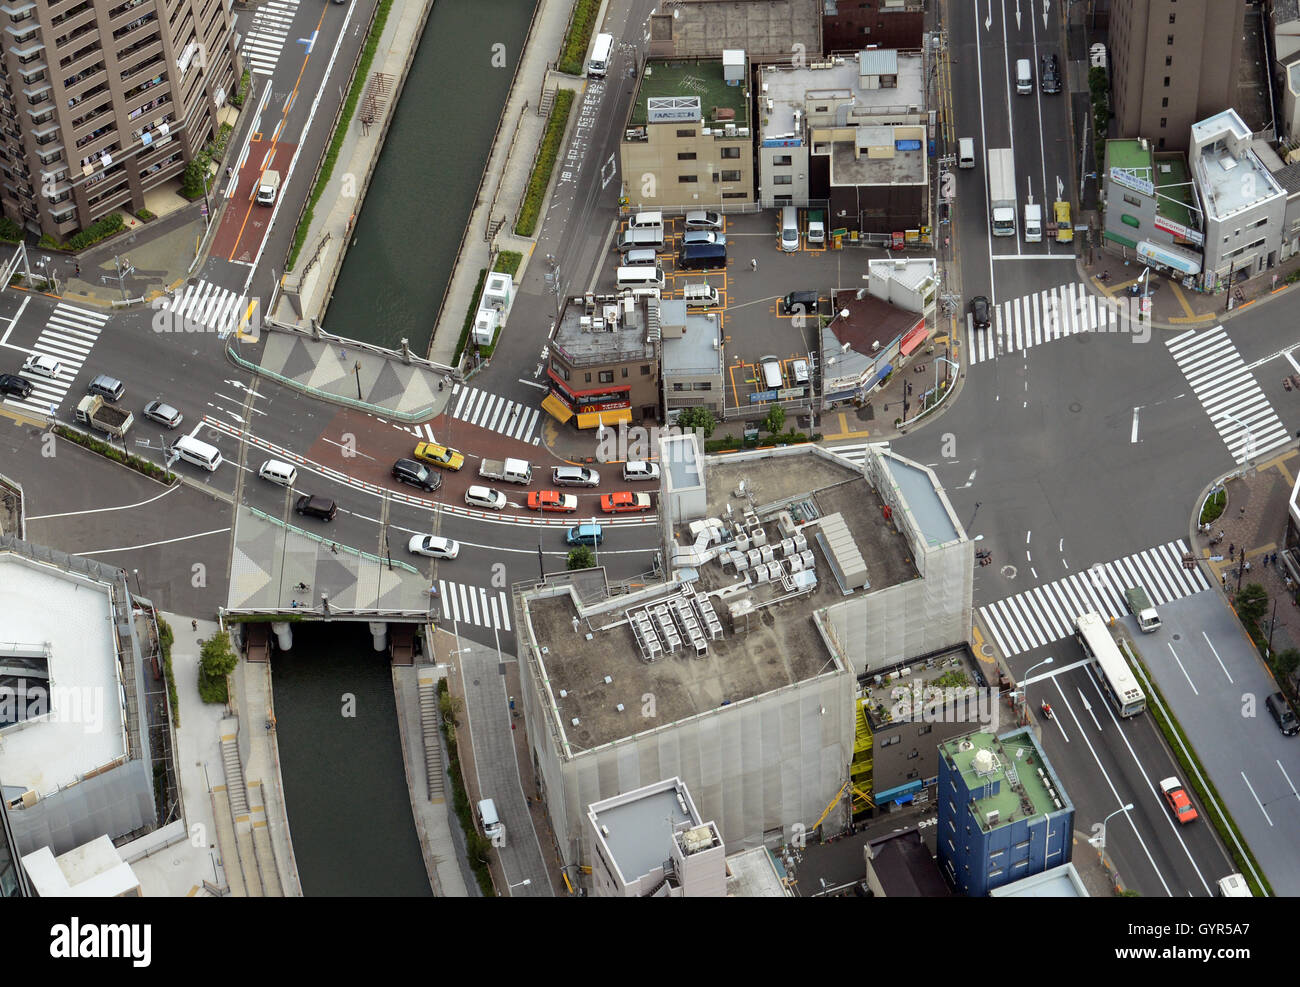 Aerial view of urban Tokyo. - Stock Image